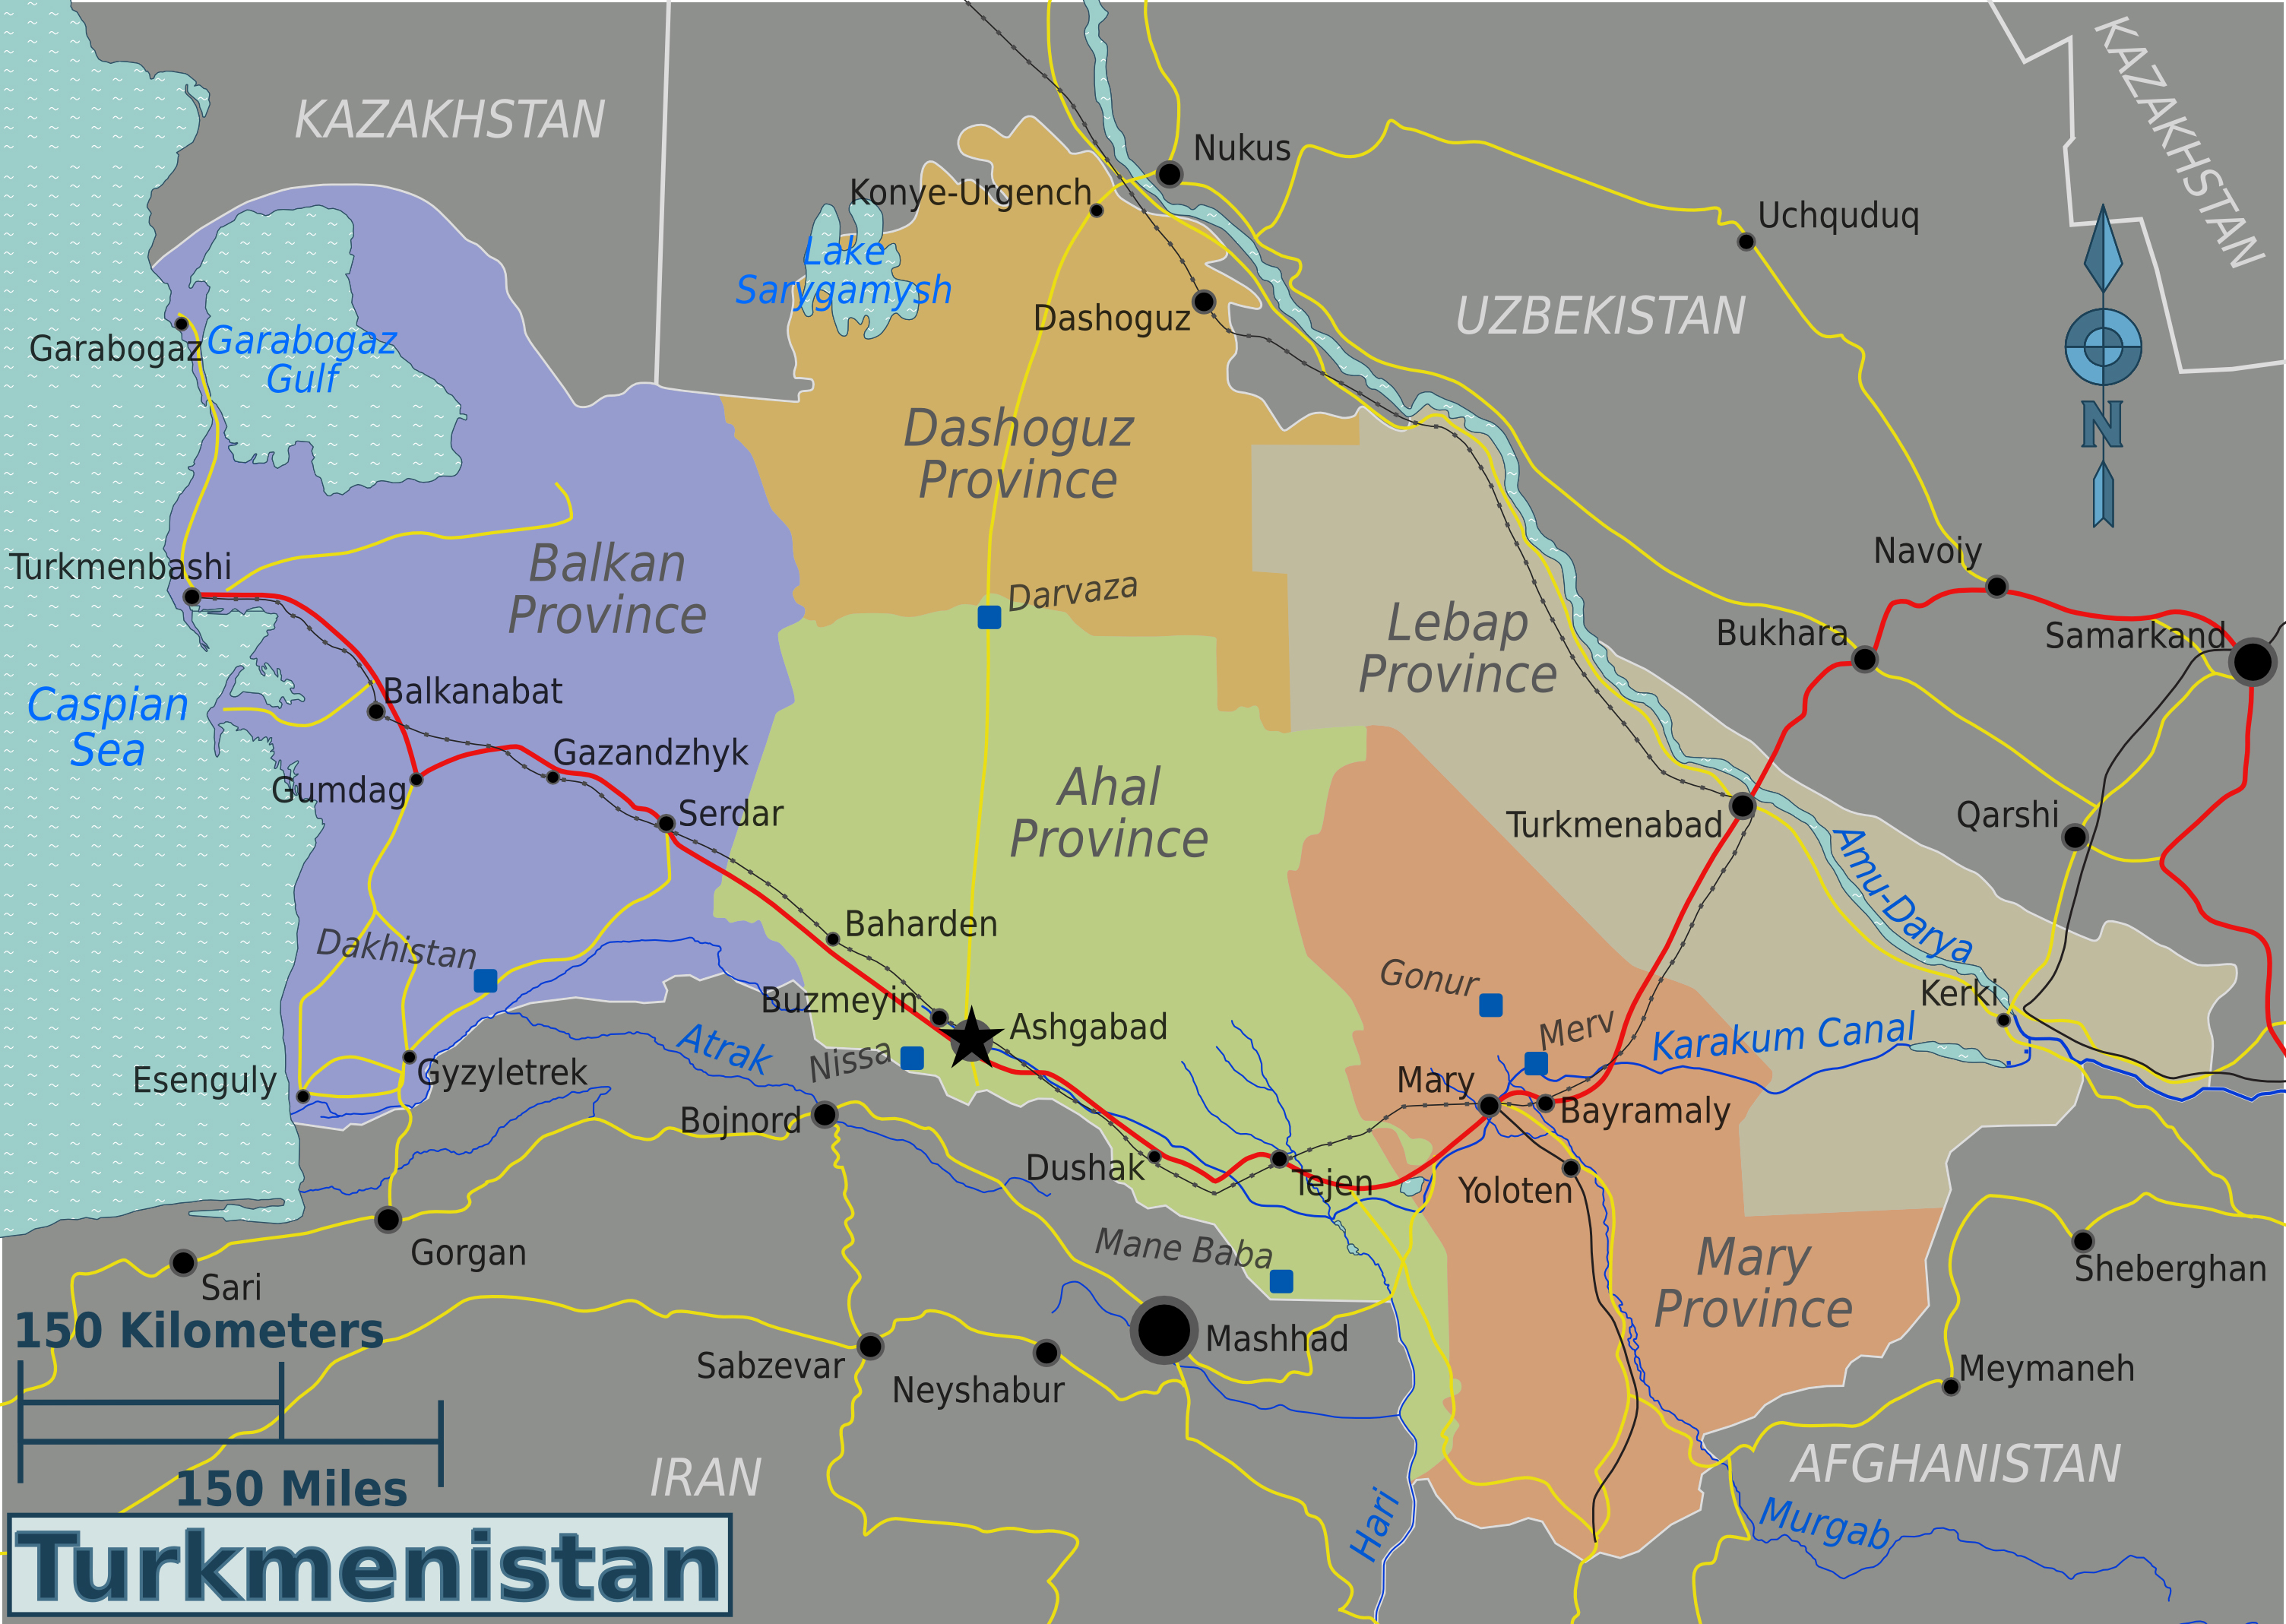 large_detailed_administrative_and_road_map_of_turkmenistan